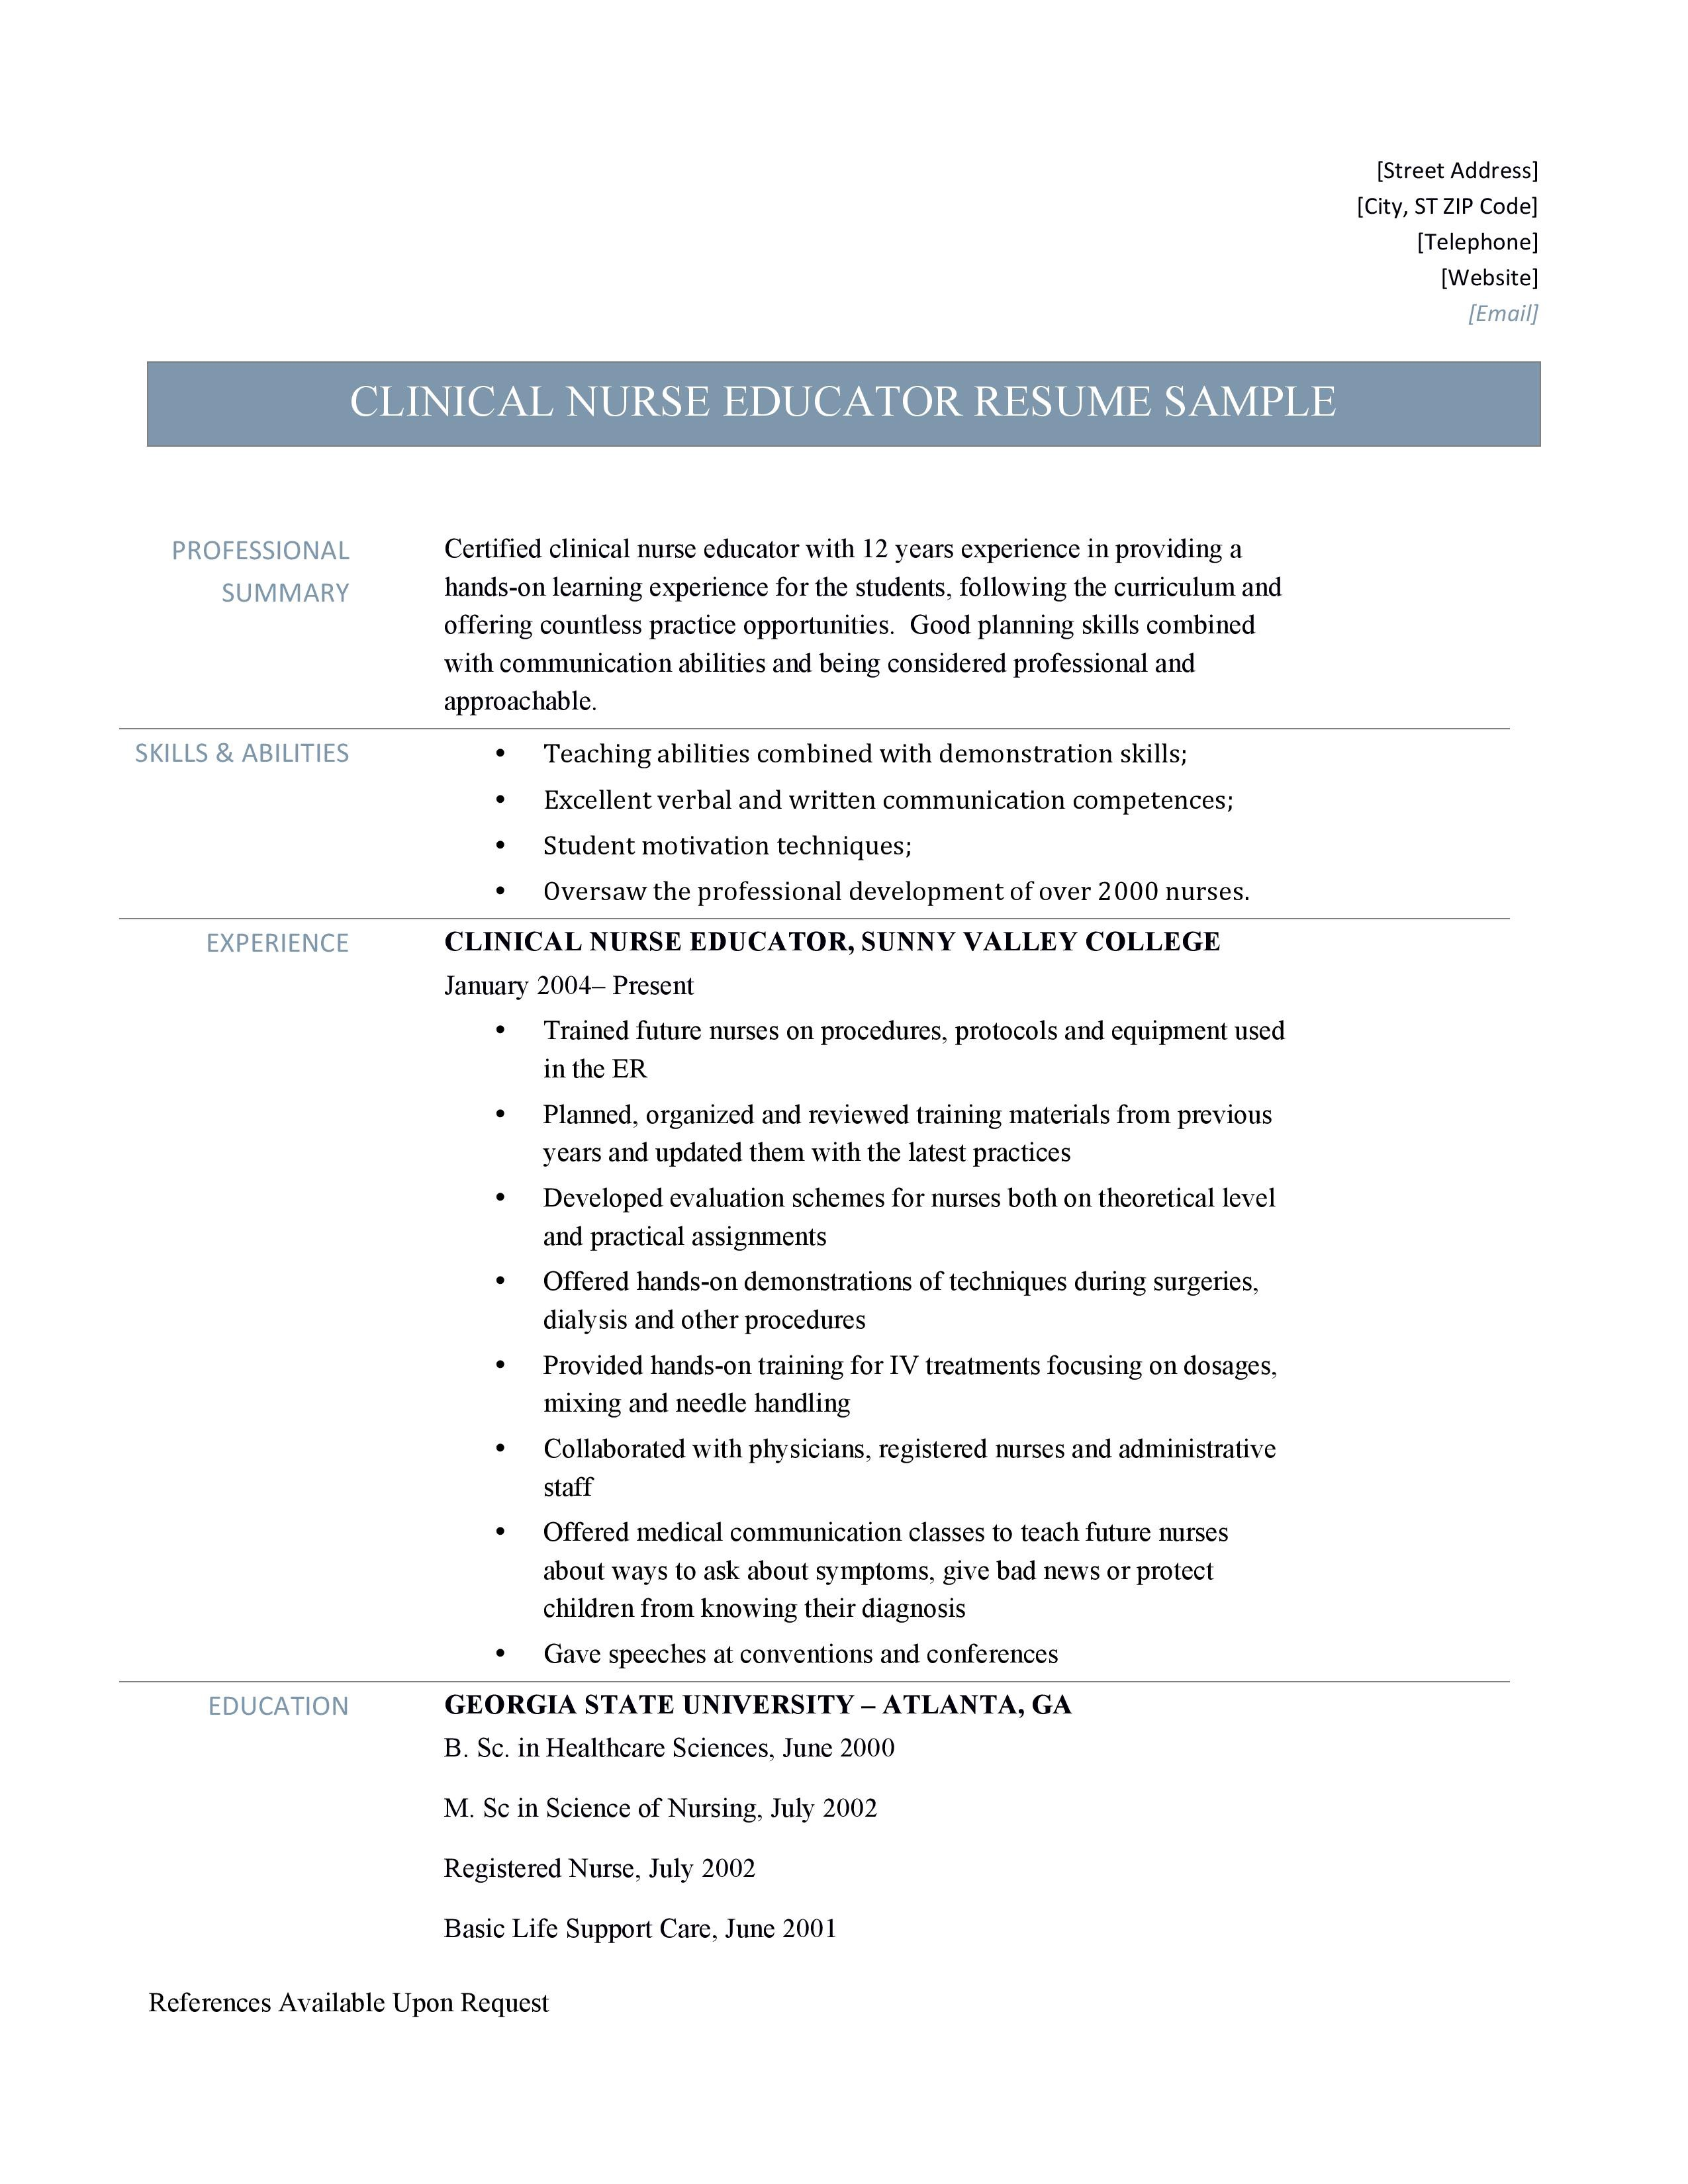 Clinical Nurse Educator Resume And Template By Online Resume